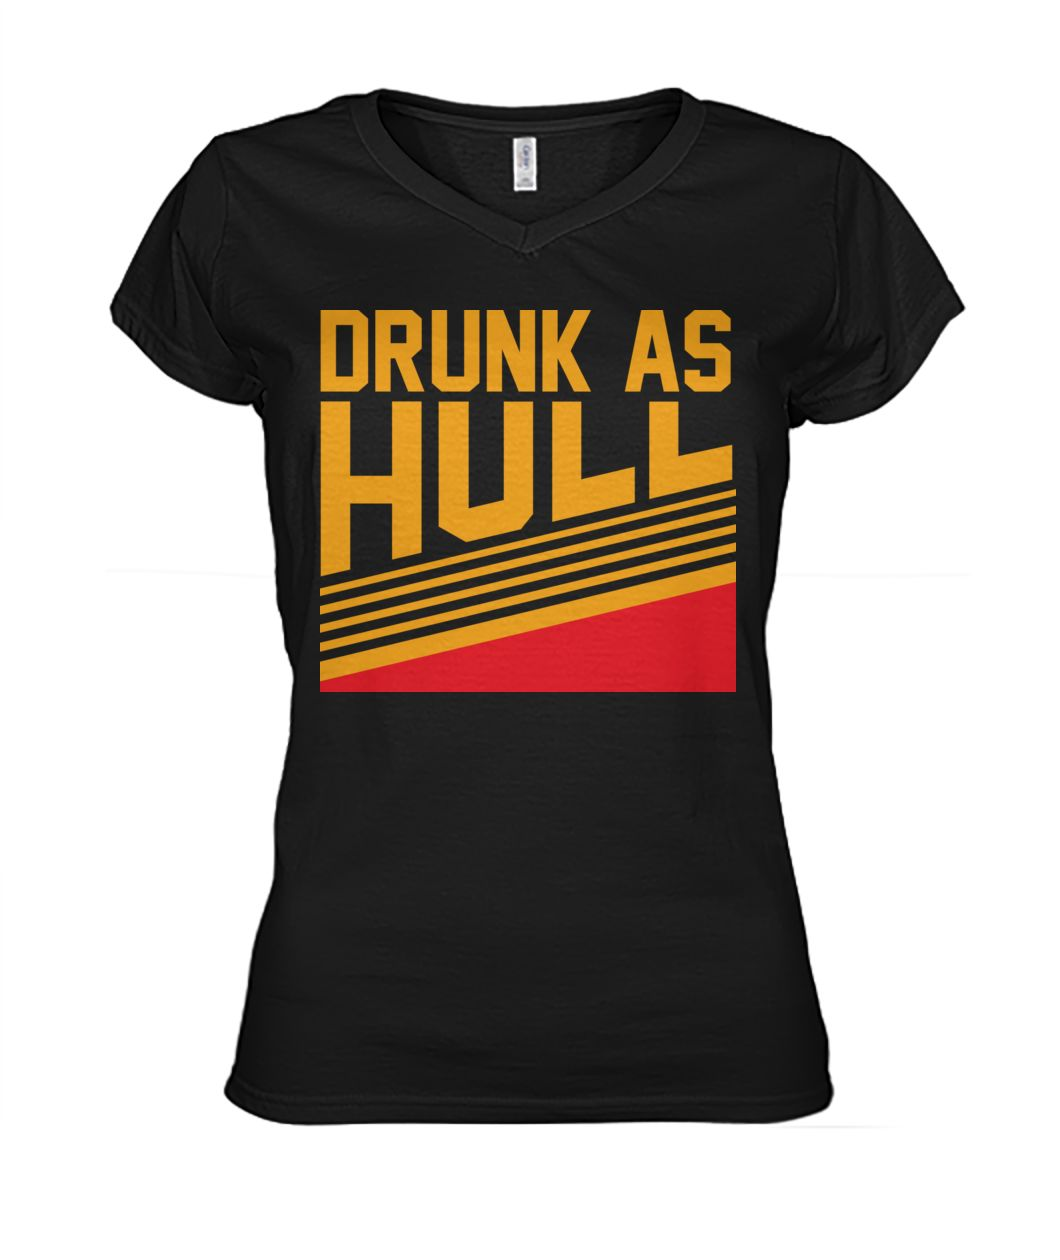 Drunk as hull St louis hockey women's v-neck